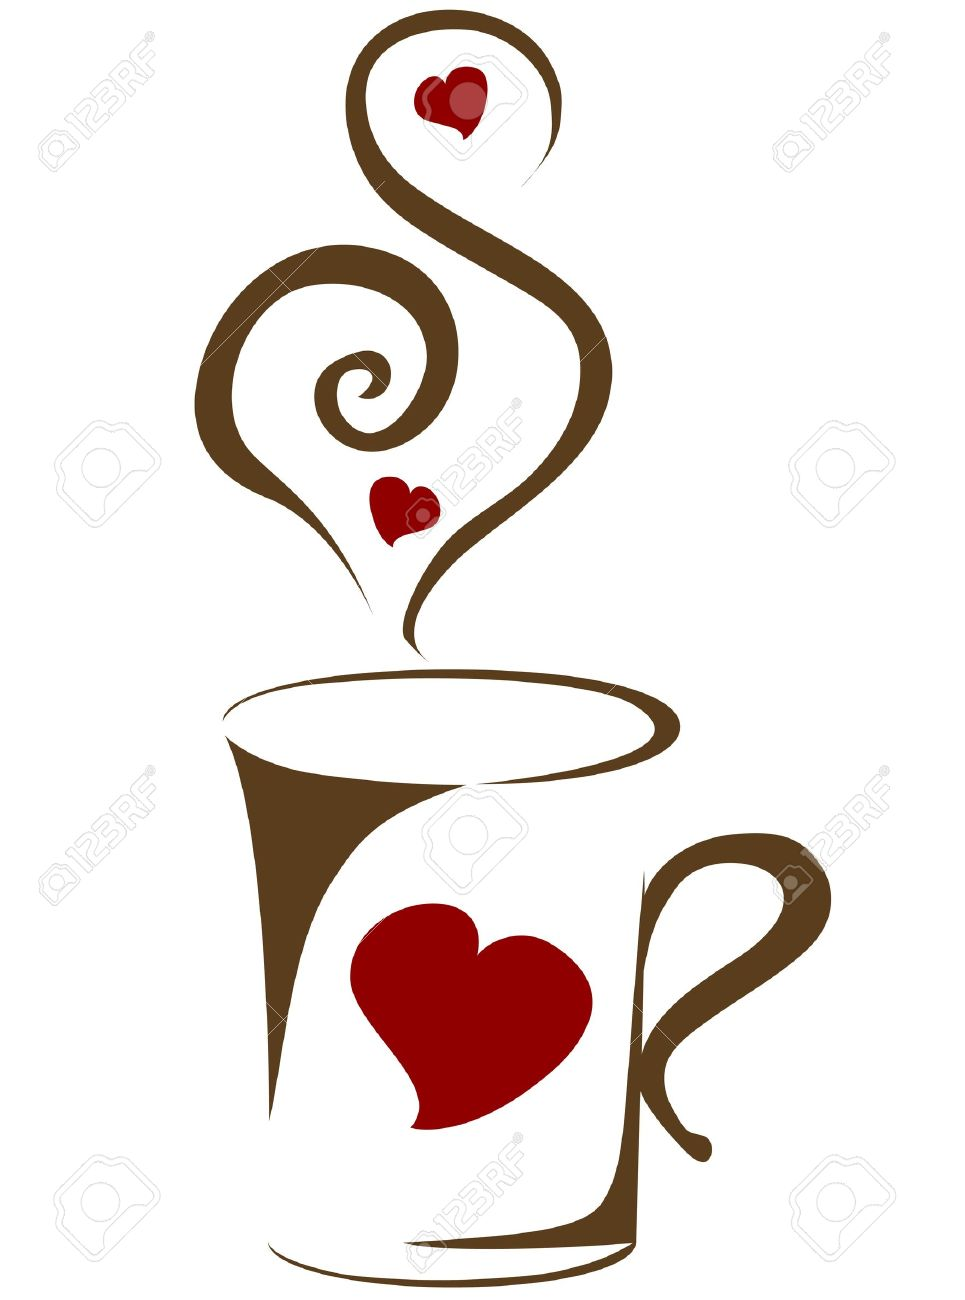 Coffee Cup Vector Clipart | Free download on ClipArtMag